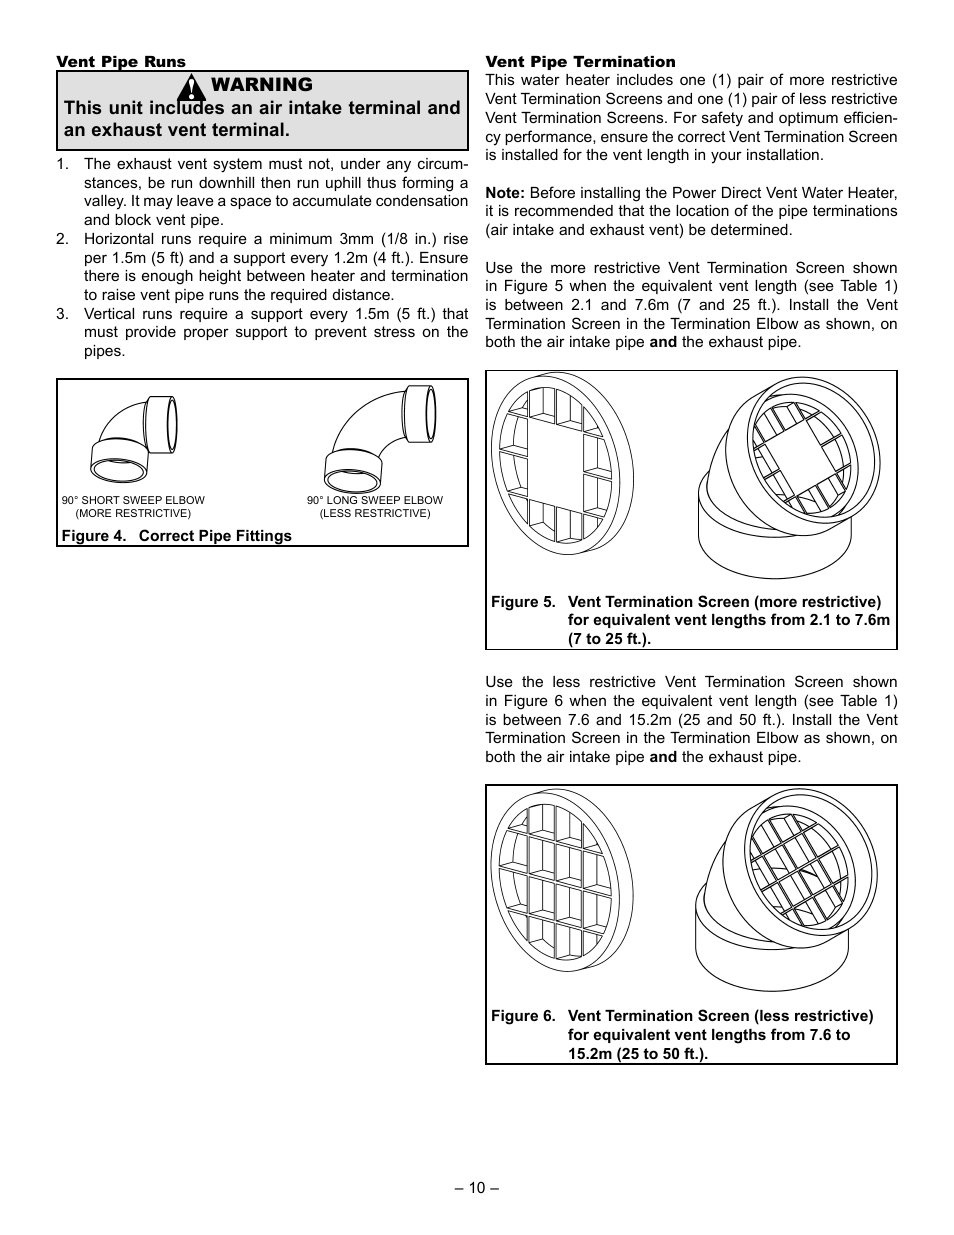 John Wood Power Direct Vent (ENERGY STAR) User Manual   Page